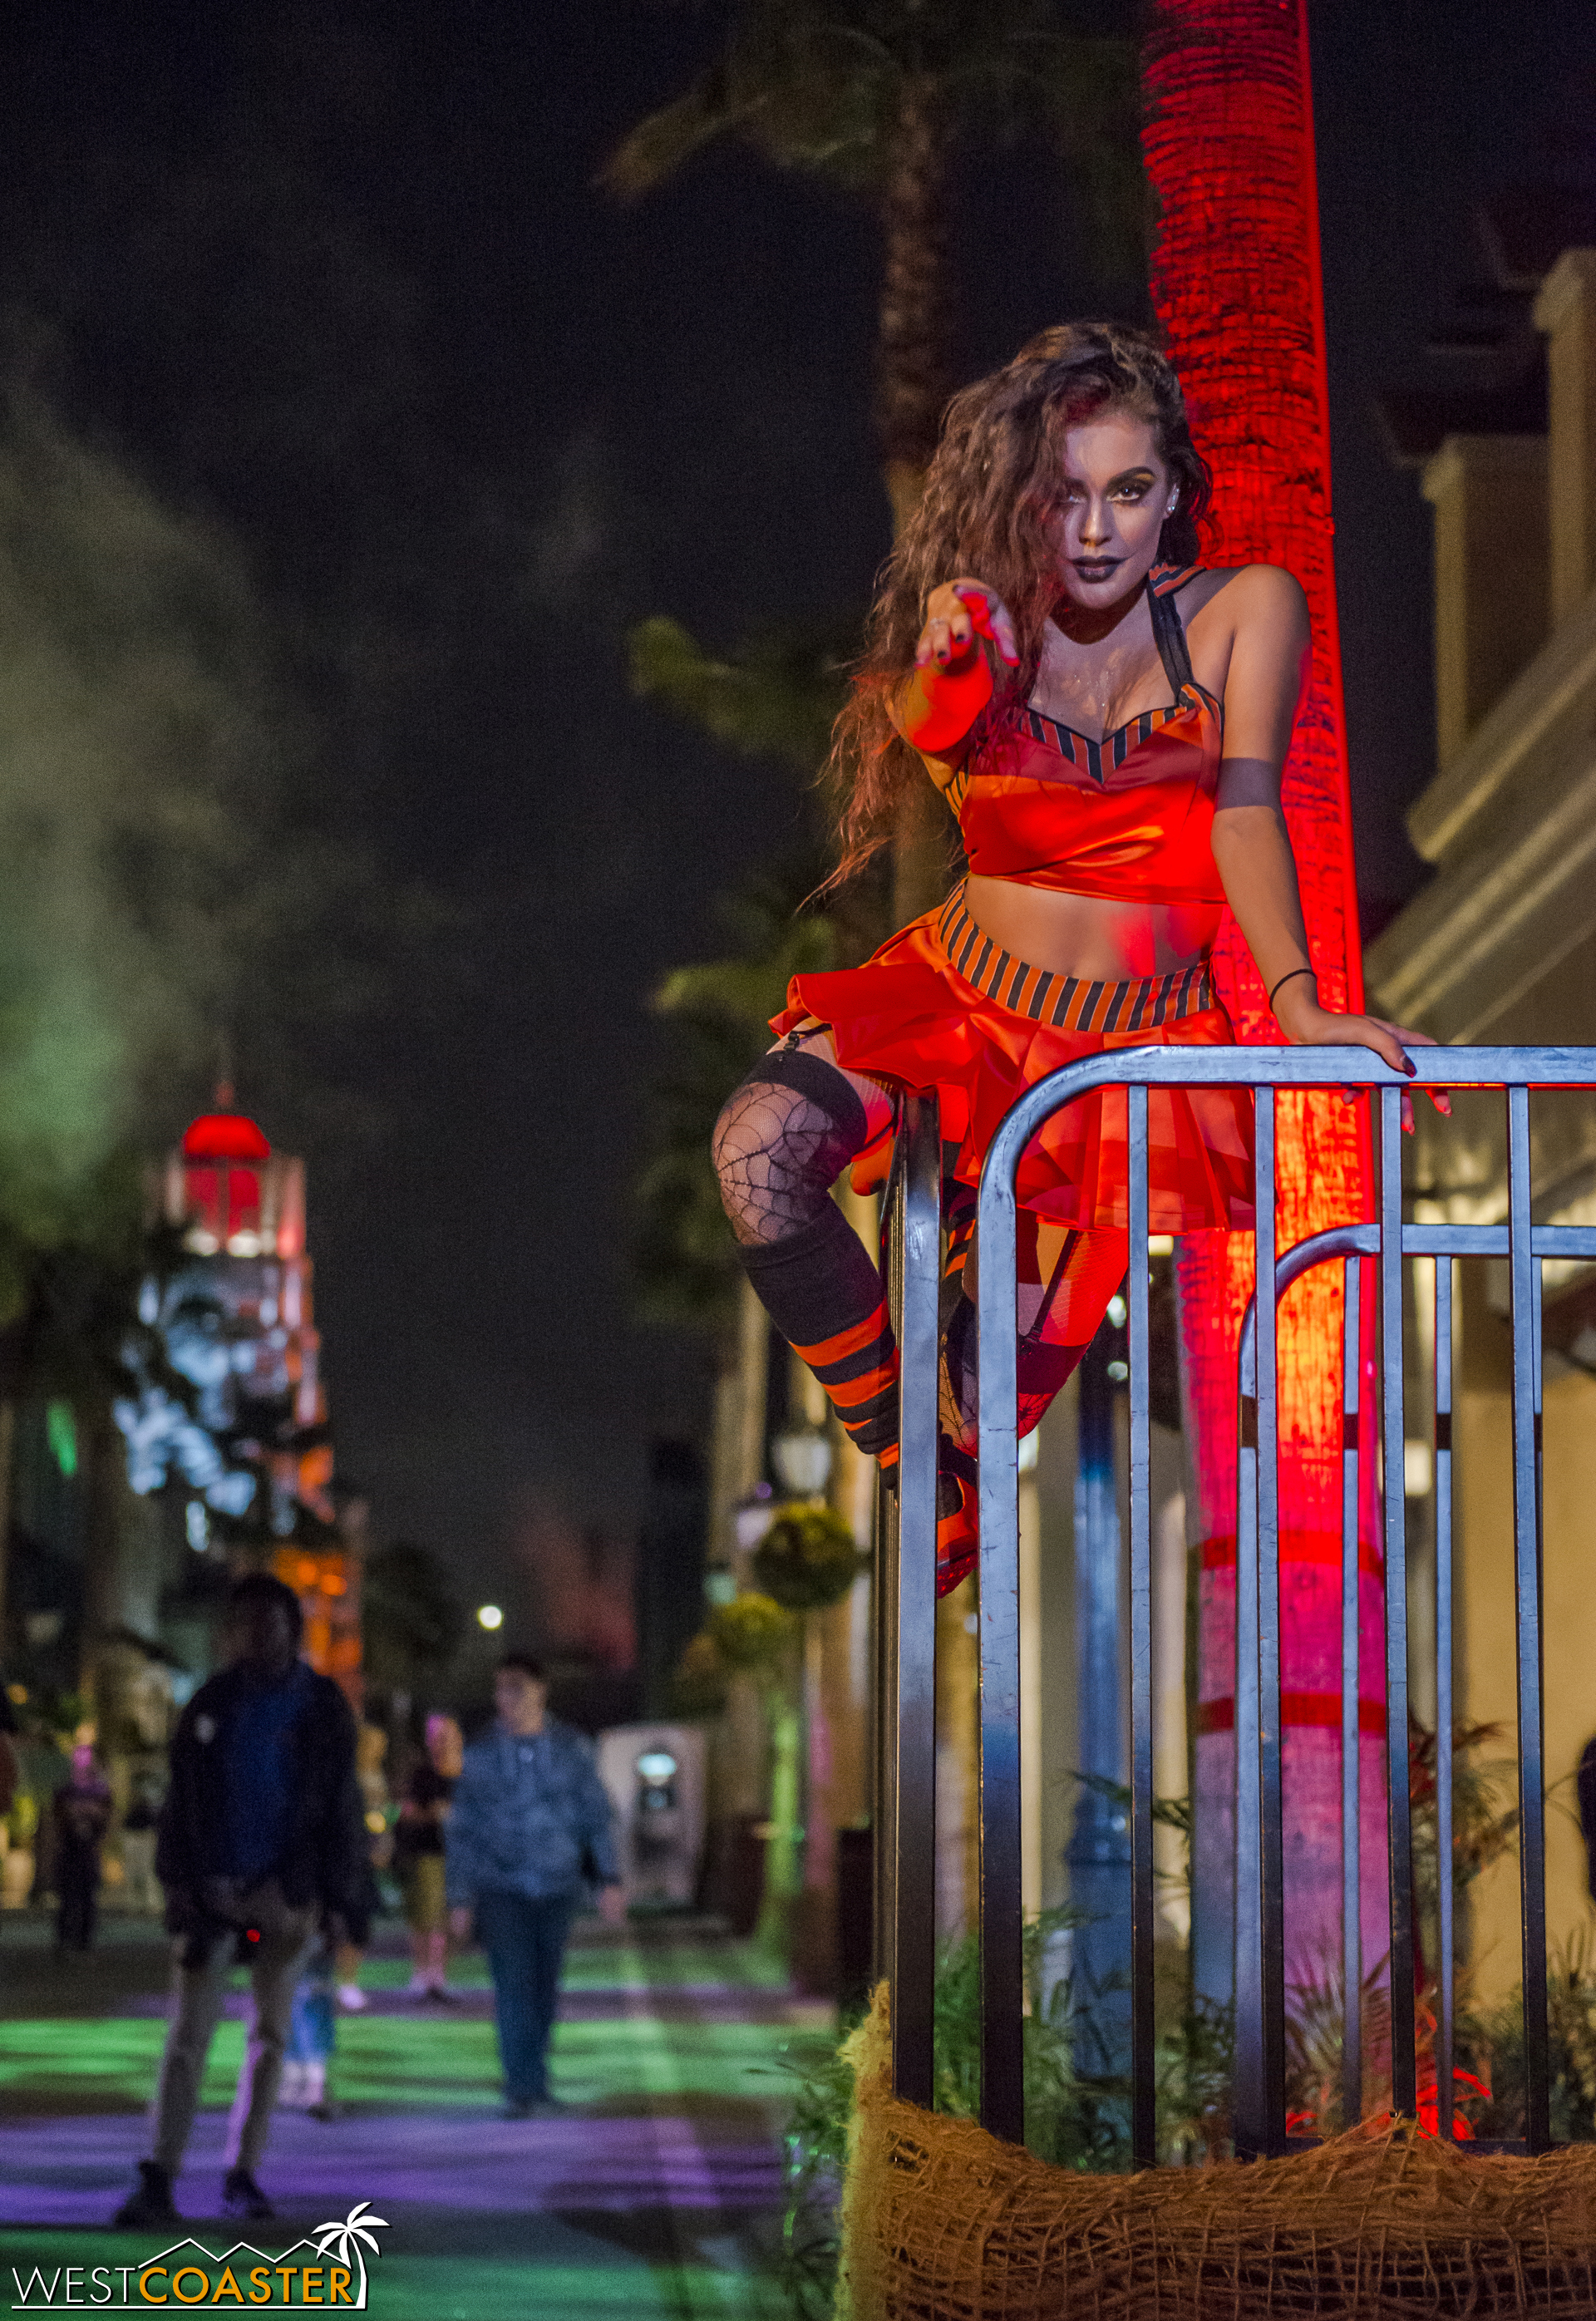 """Of course, """"zhe dancing girls"""" are always a welcome sight at Horror Nights!"""